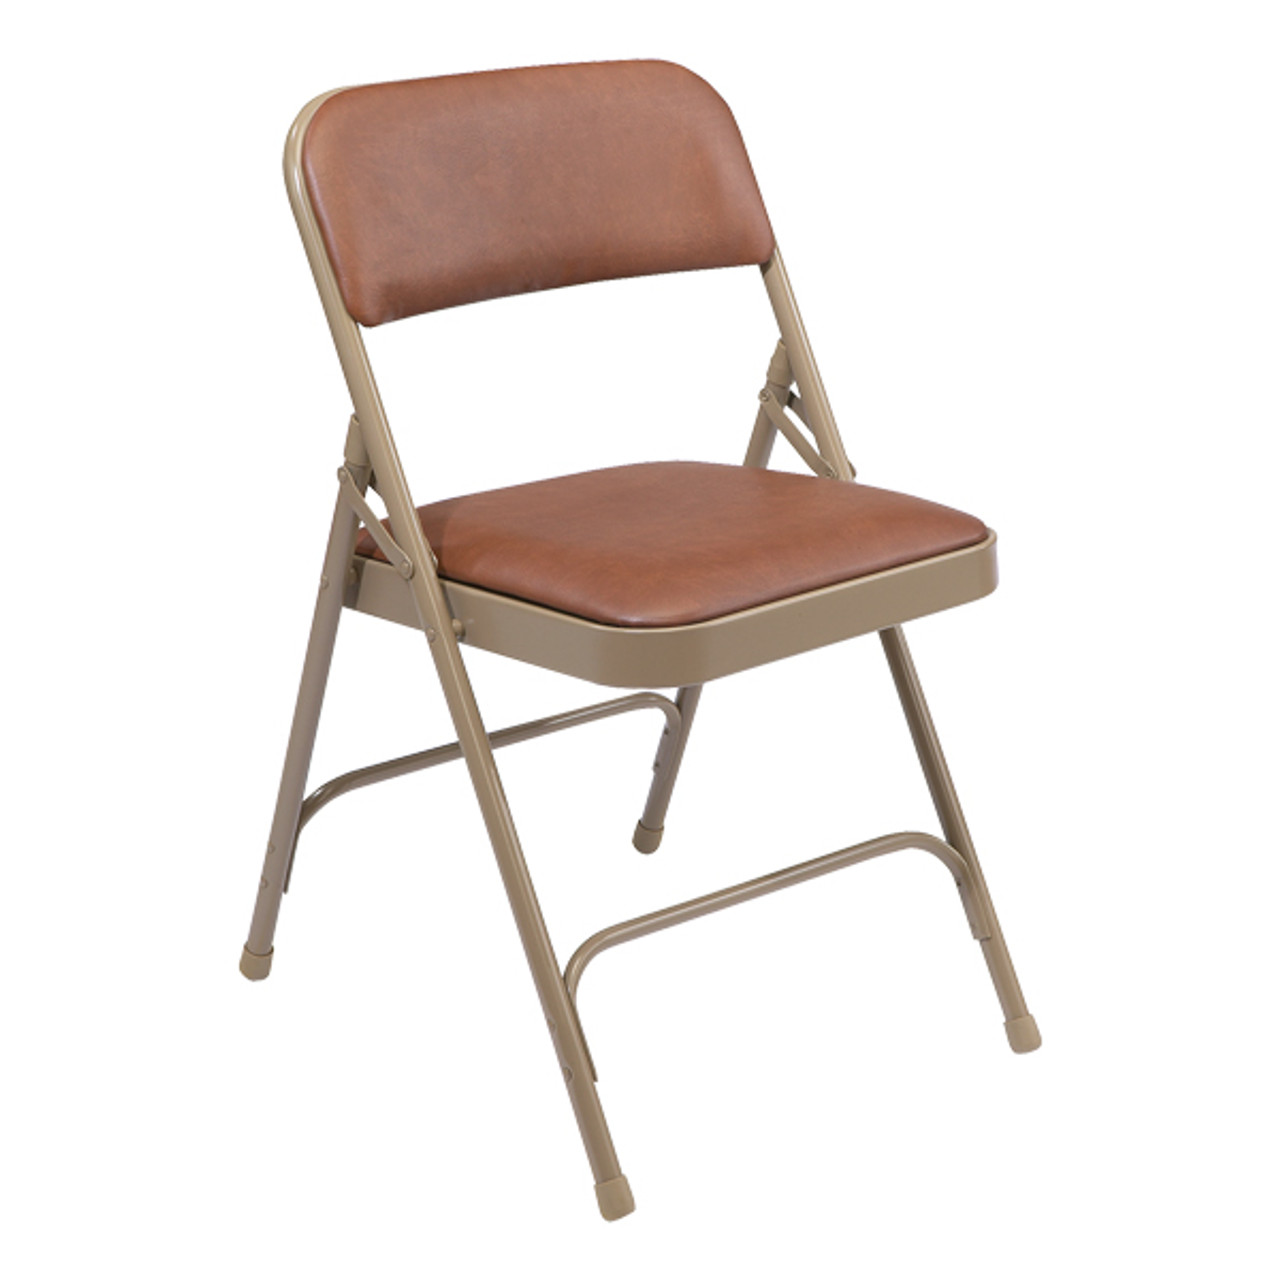 ... National Public Seating 1200 Vinyl Upholstered Premium Folding Chair ...